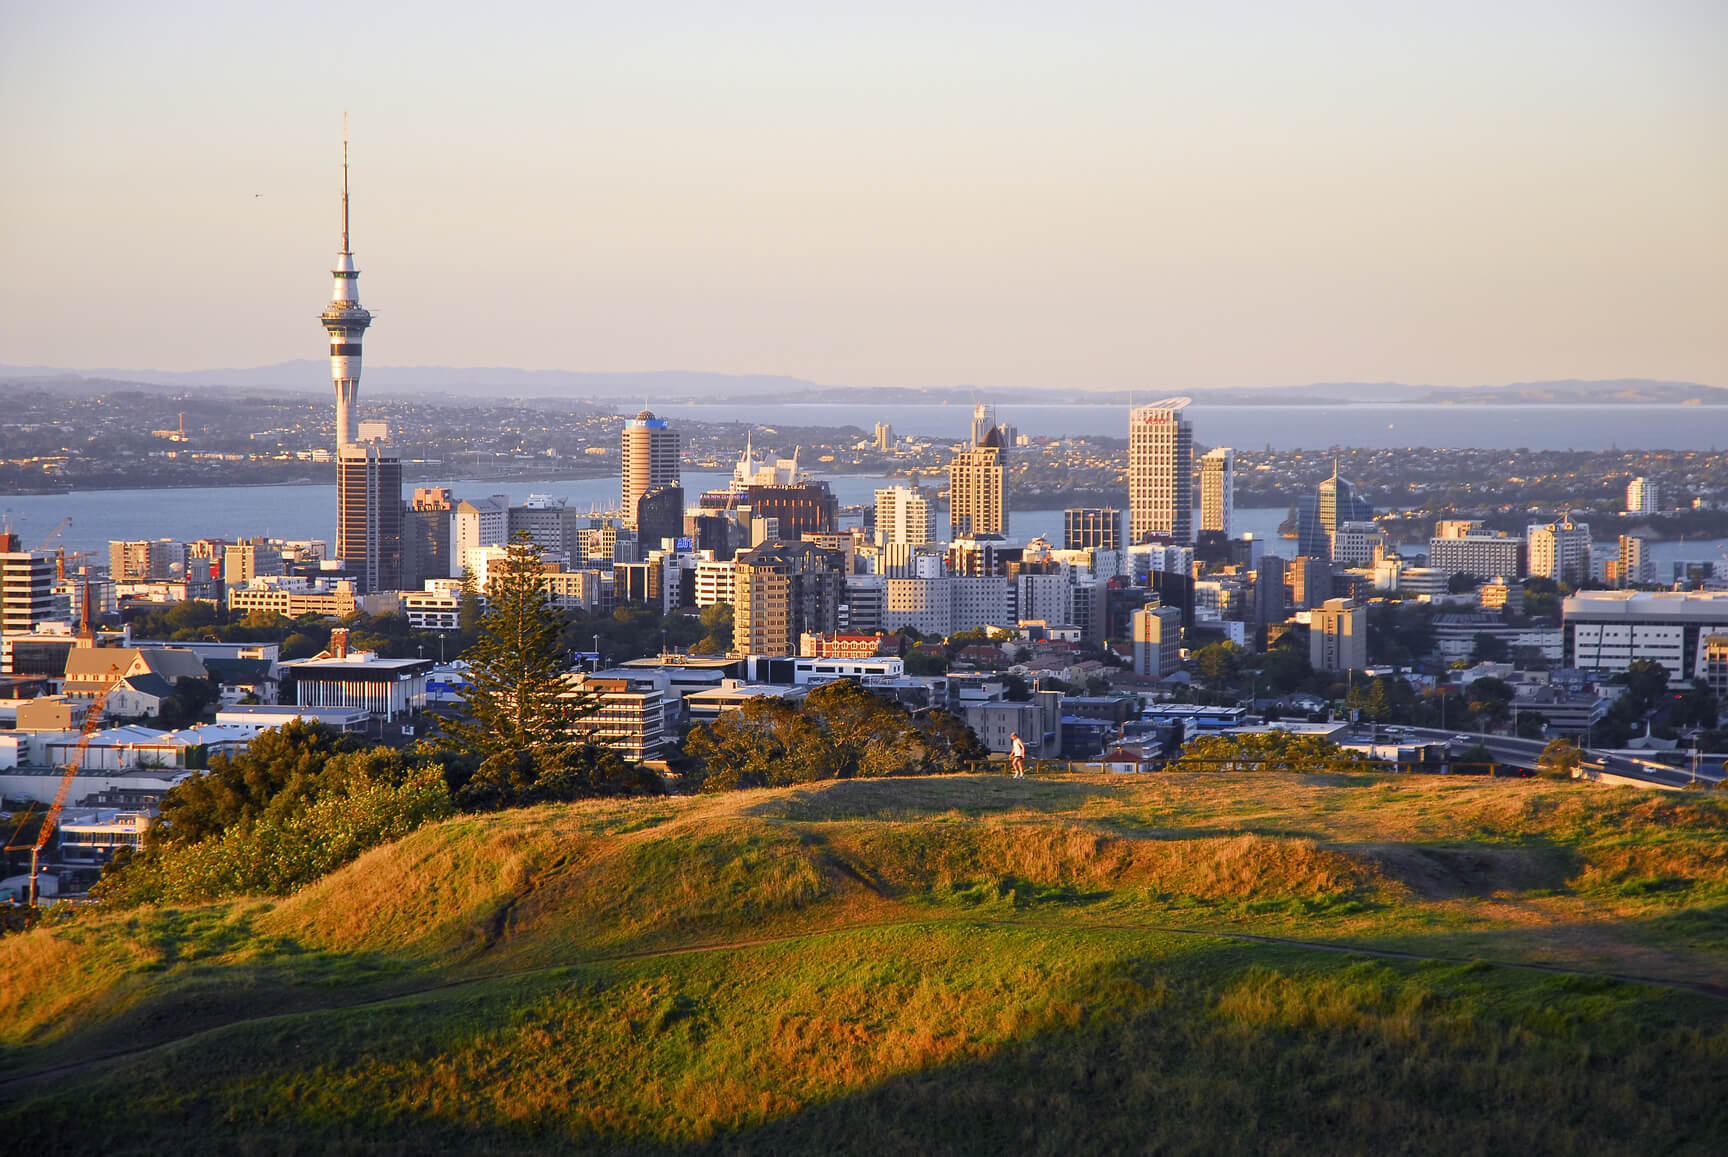 Los Angeles to Auckland, New Zealand for only $628 roundtrip